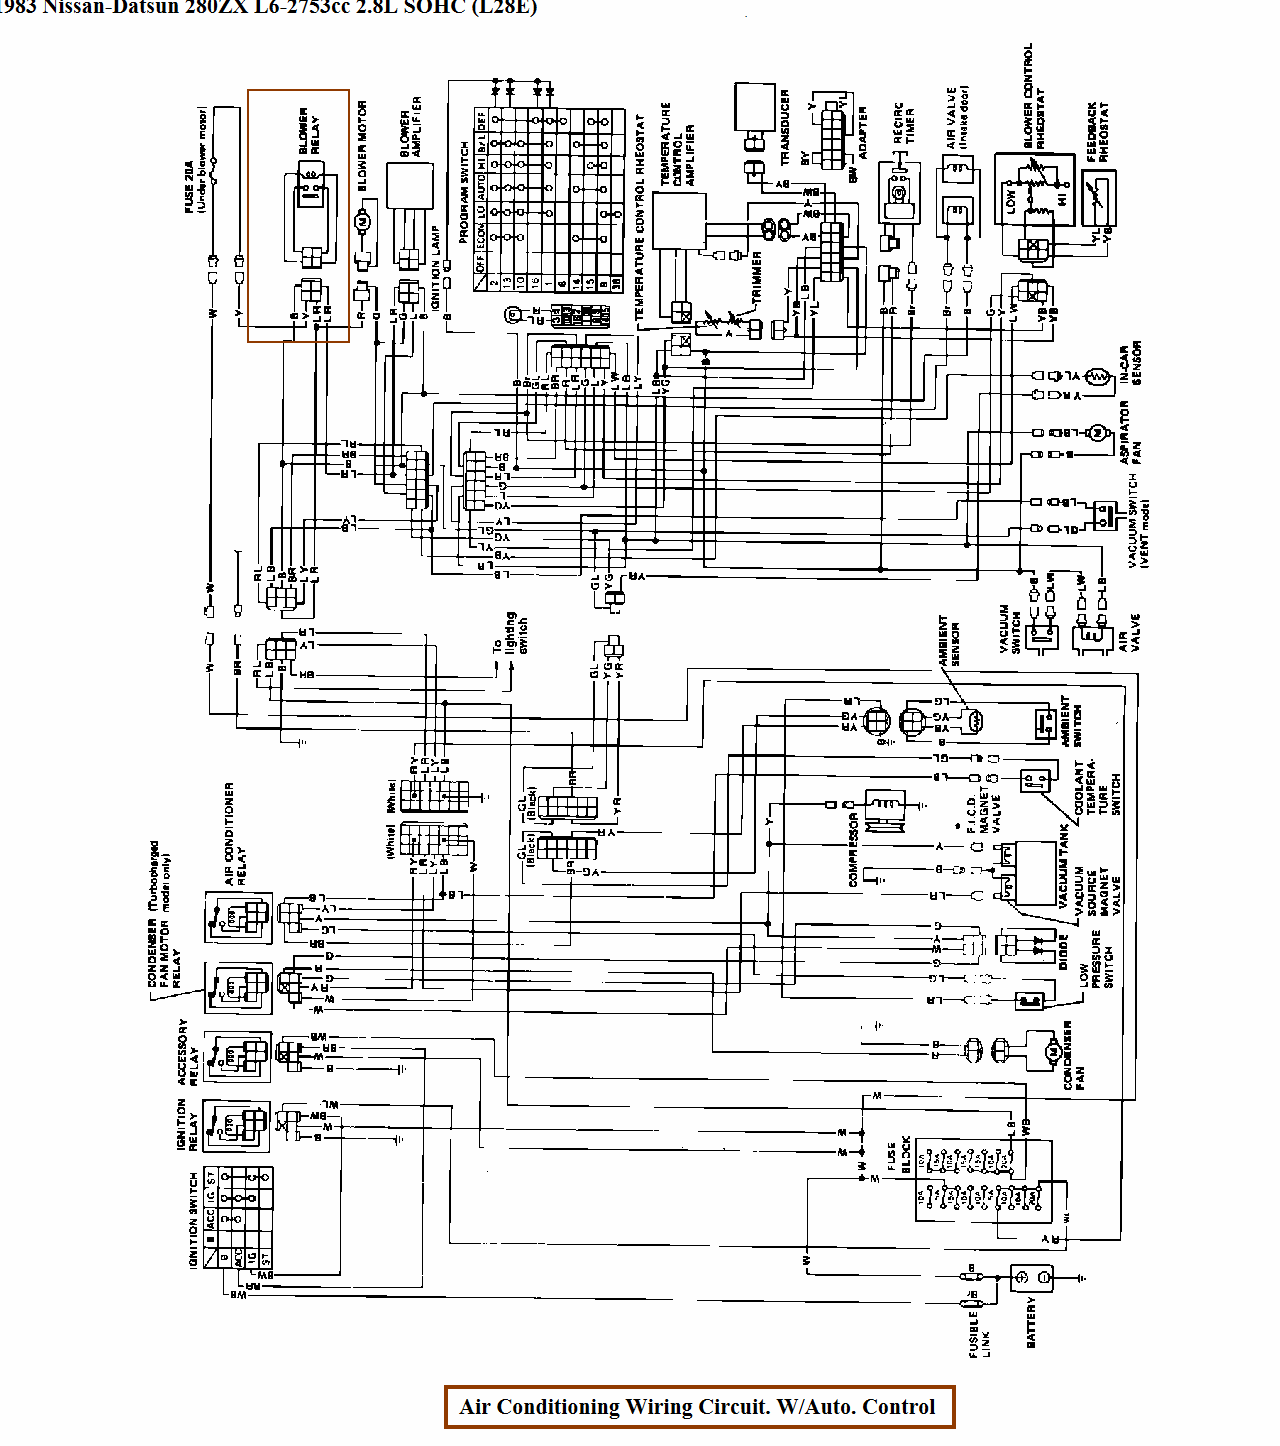 location of blower motor relay on 1983 nissan 280zx with